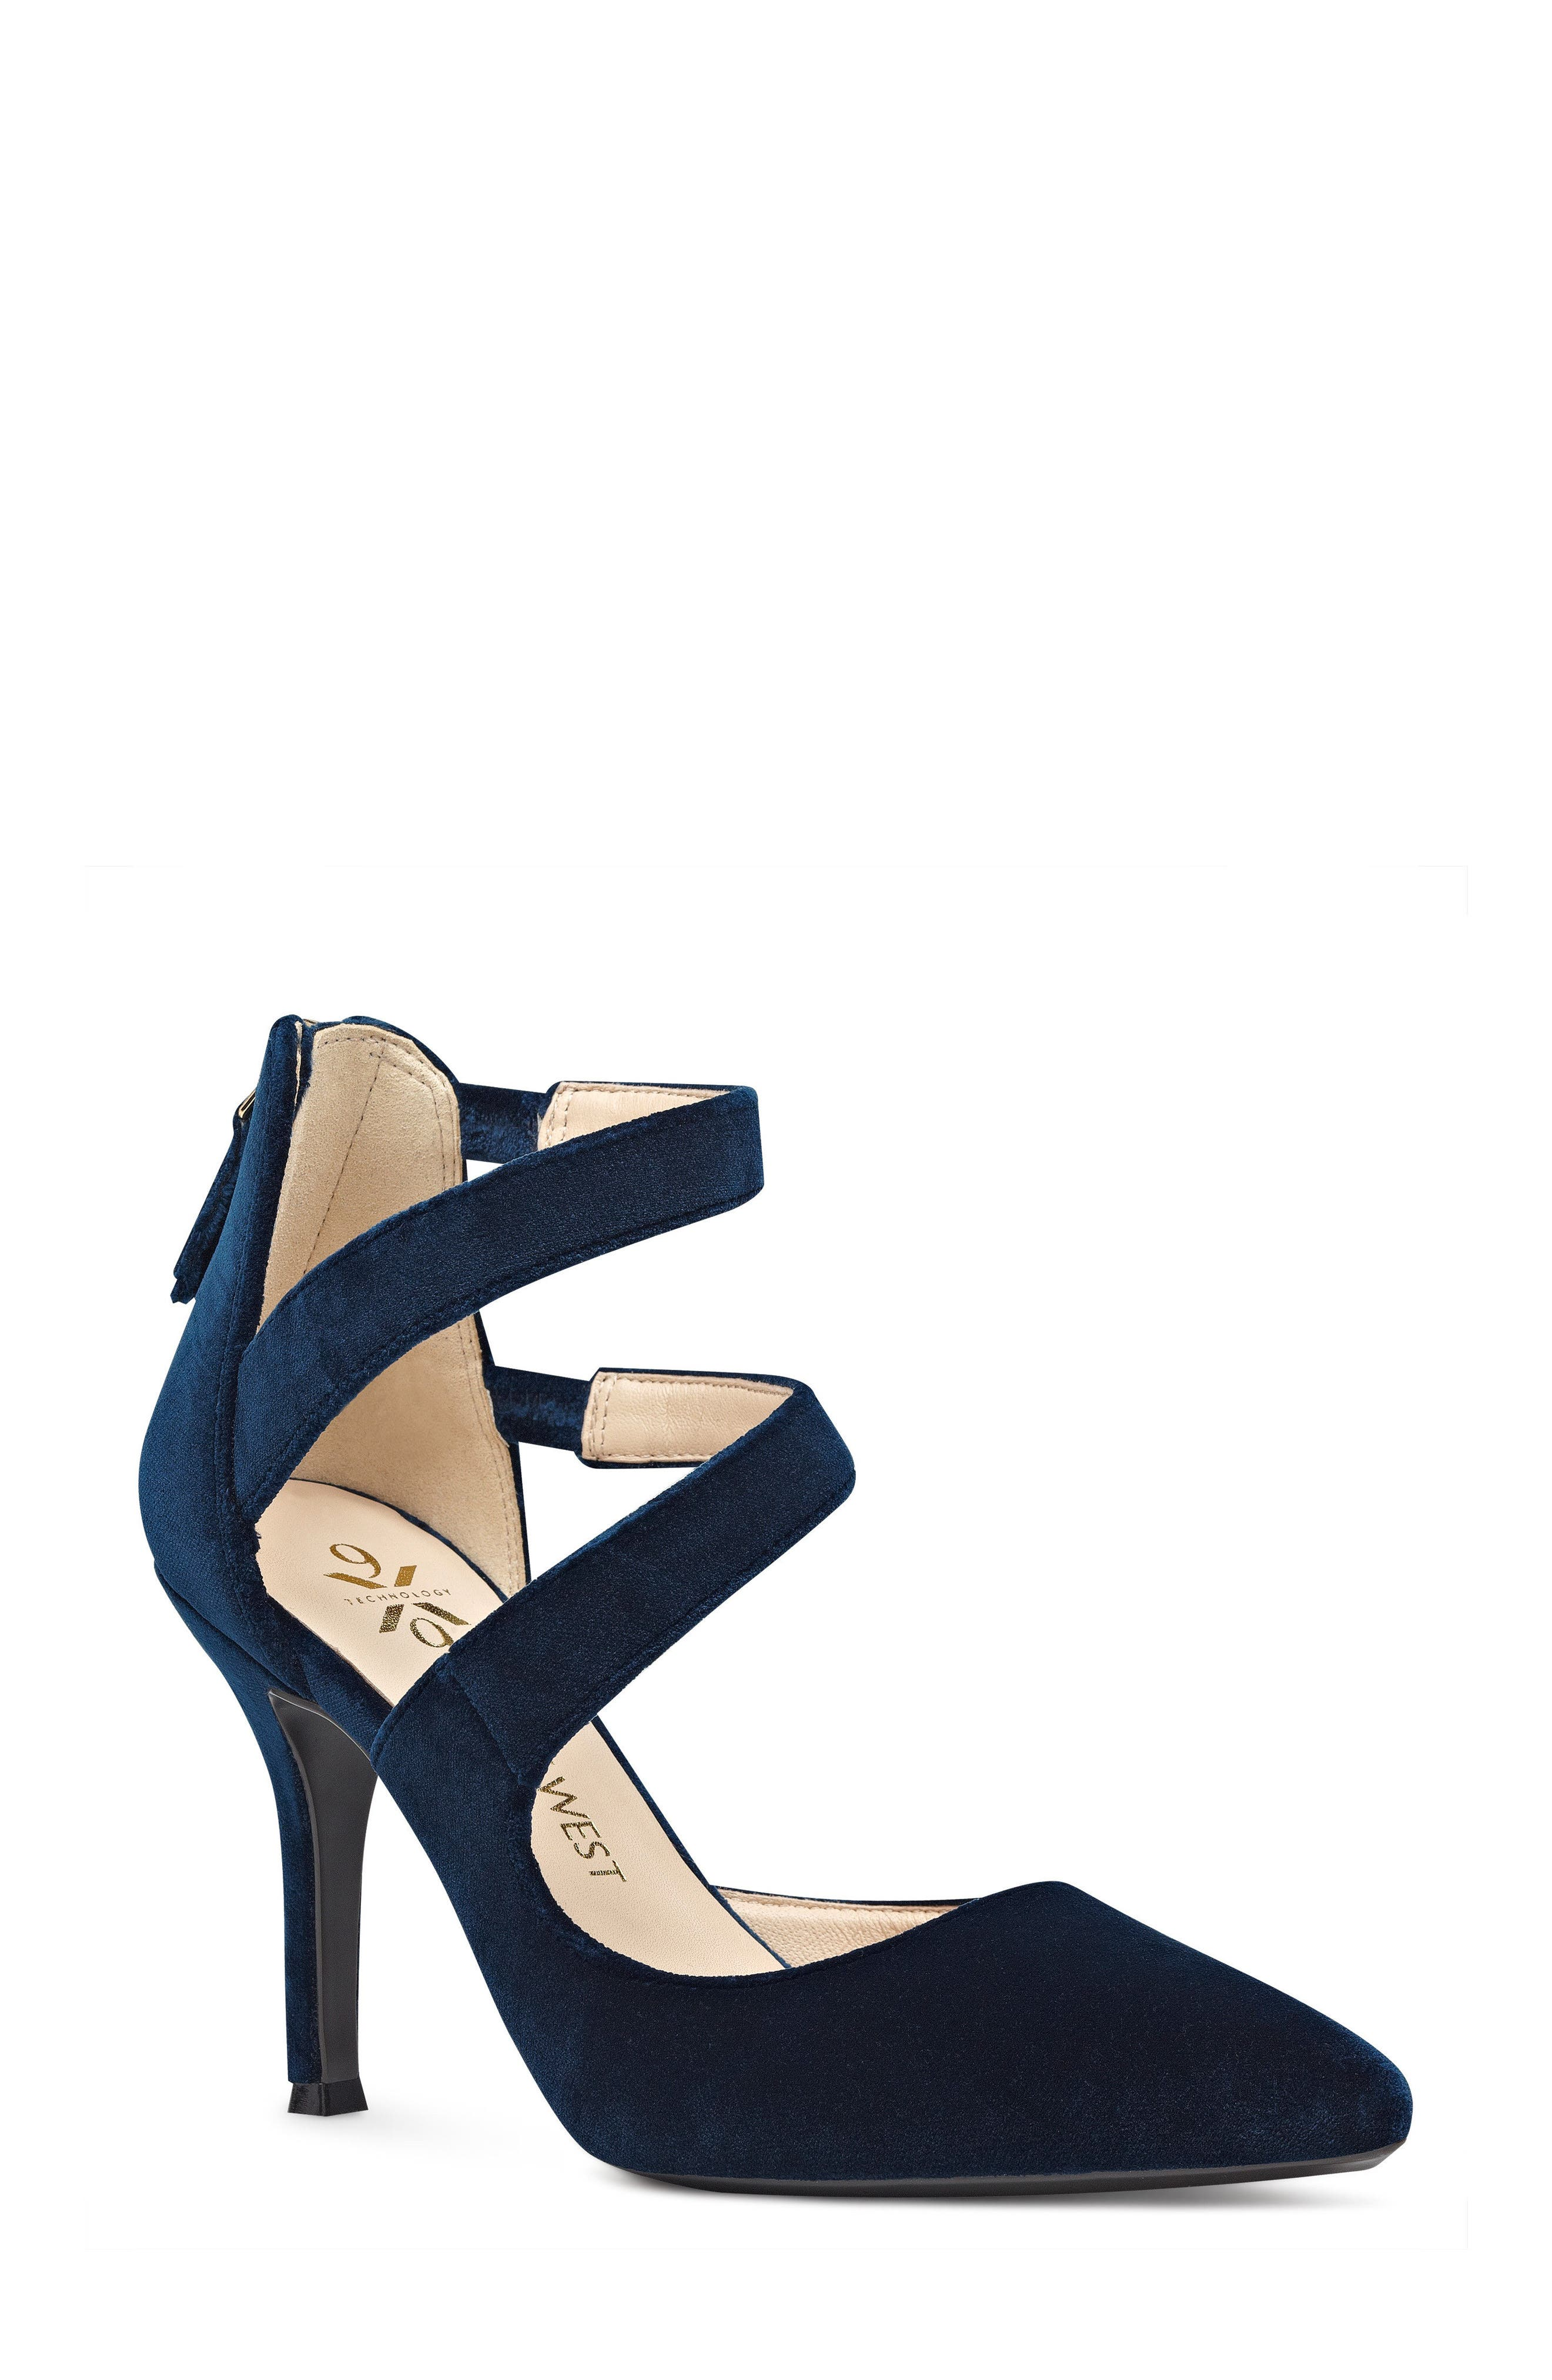 Florent Asymmetrical Strappy Pump,                         Main,                         color, Navy Fabric